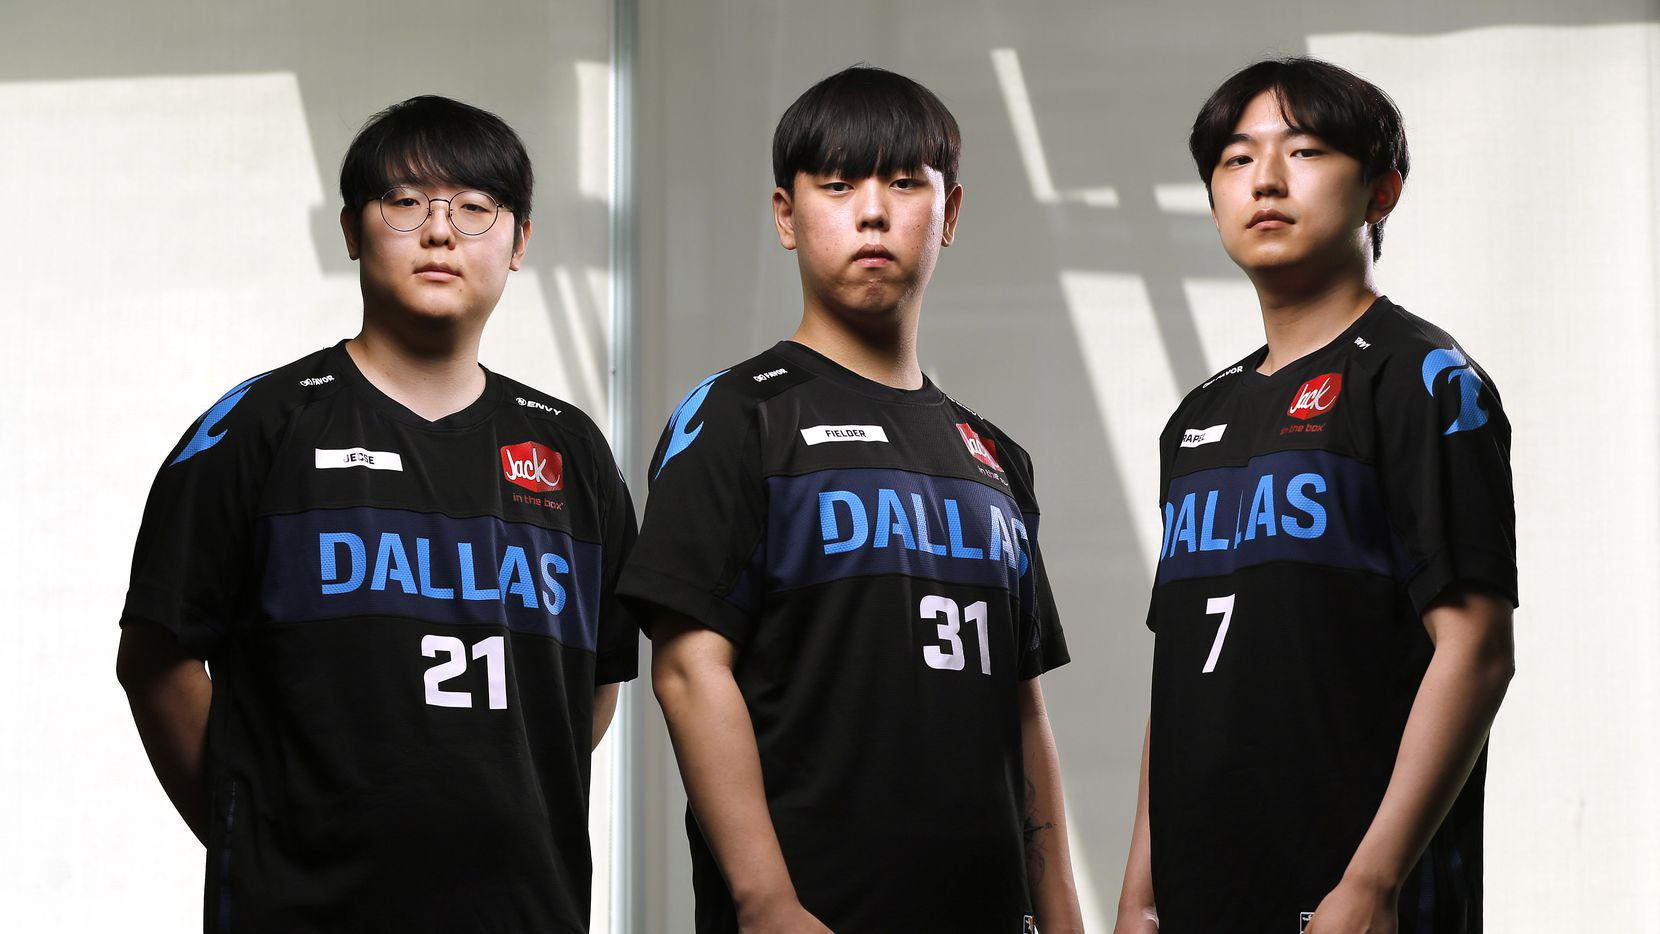 Dallas Fuel Overwatch League players Seung-soo 'Jecse' Lee, Kwon 'Fielder' Jun, and Jun Keun 'Rapel' Kim pose for a photo at Envy Gaming Headquarters in Dallas, Monday, March 29, 2021.